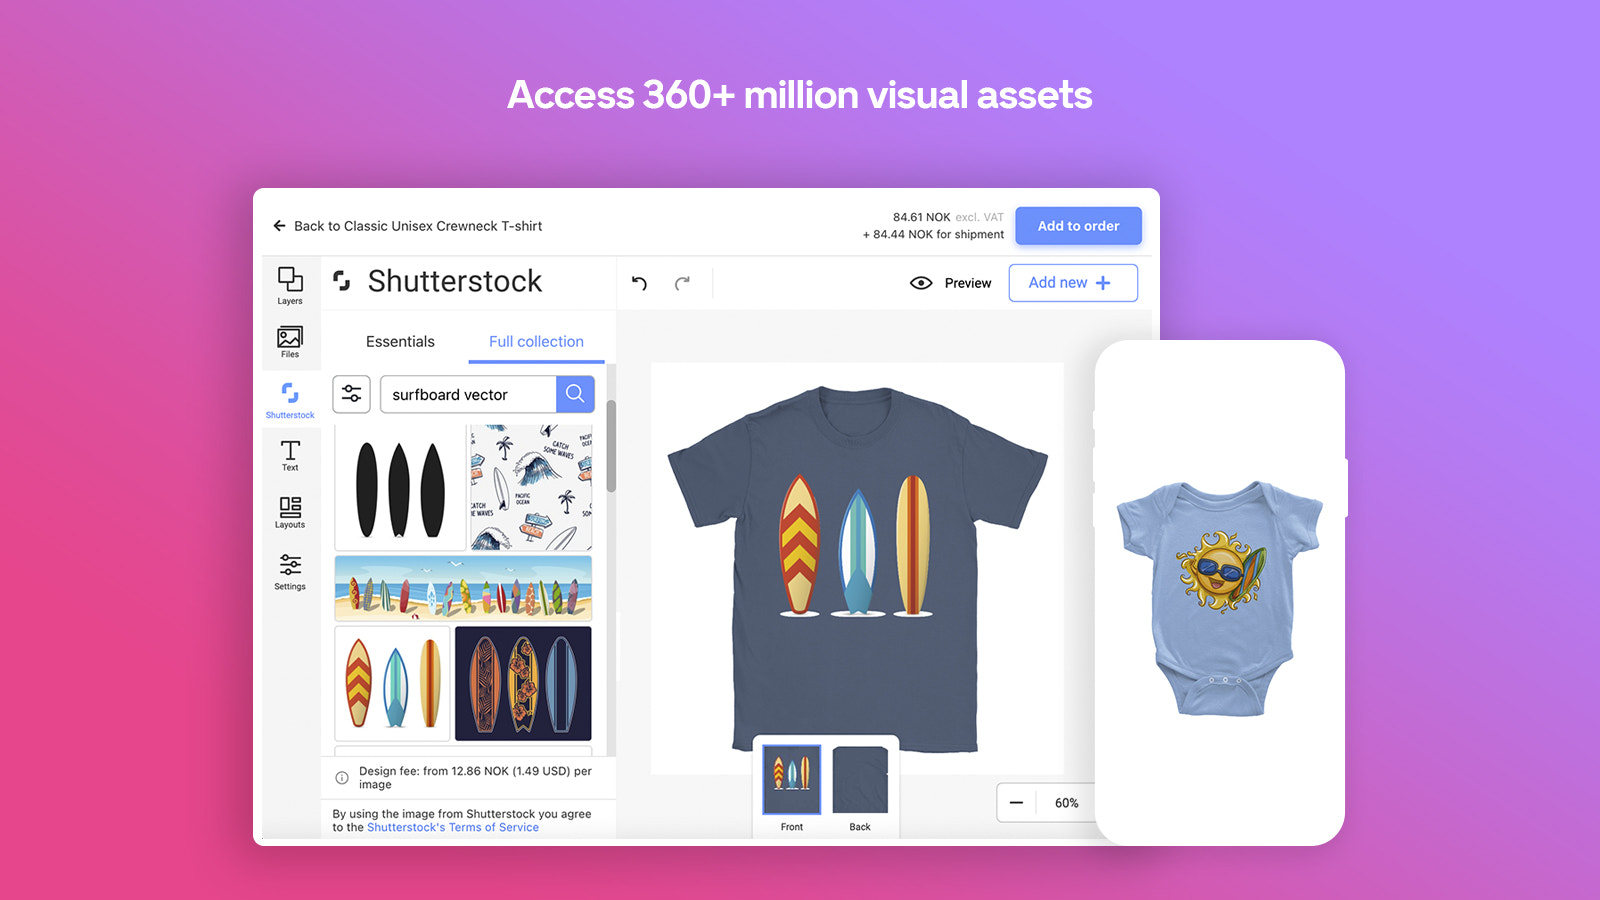 Access 360+ million images in design editor